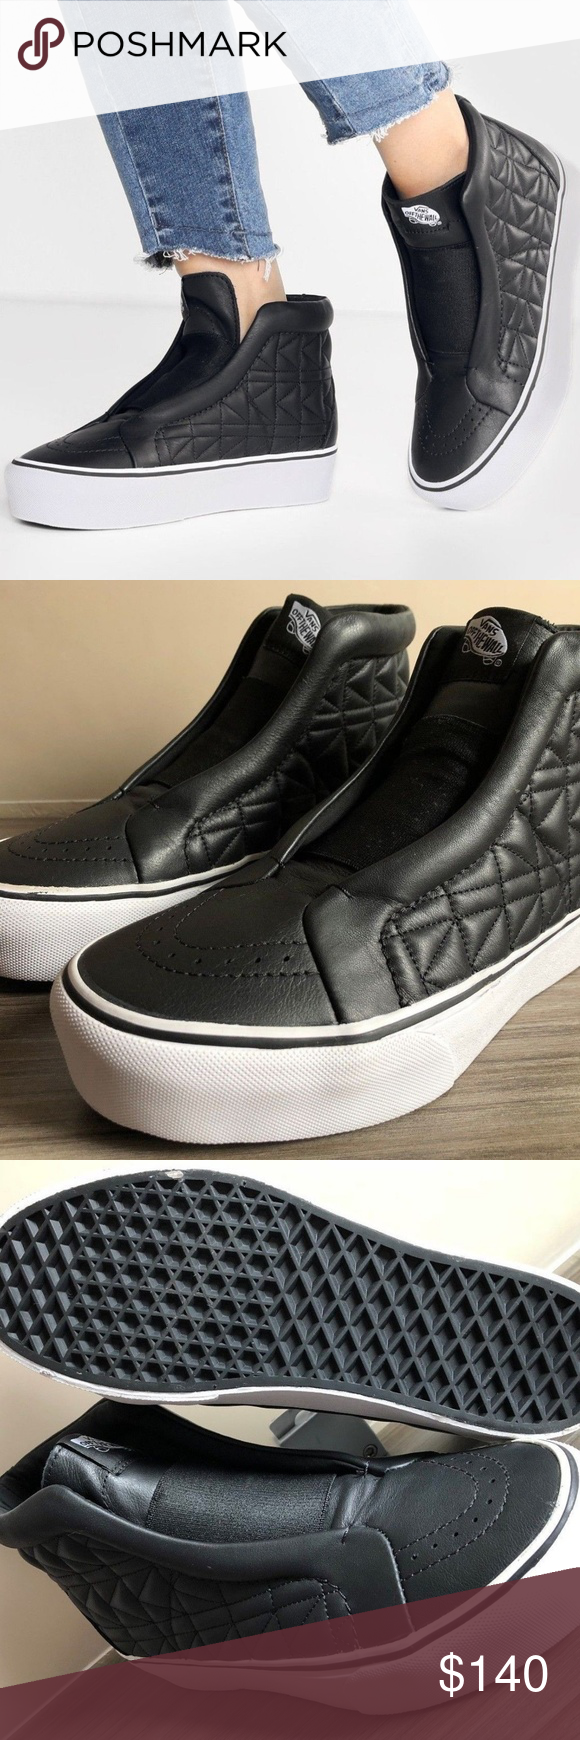 aa1b2b60655887 VANS X KARL LAGERFELD SK8-HI LACELESS SKATE SHOES NEW IN OPEN TOP BOX  AUTHENTIC